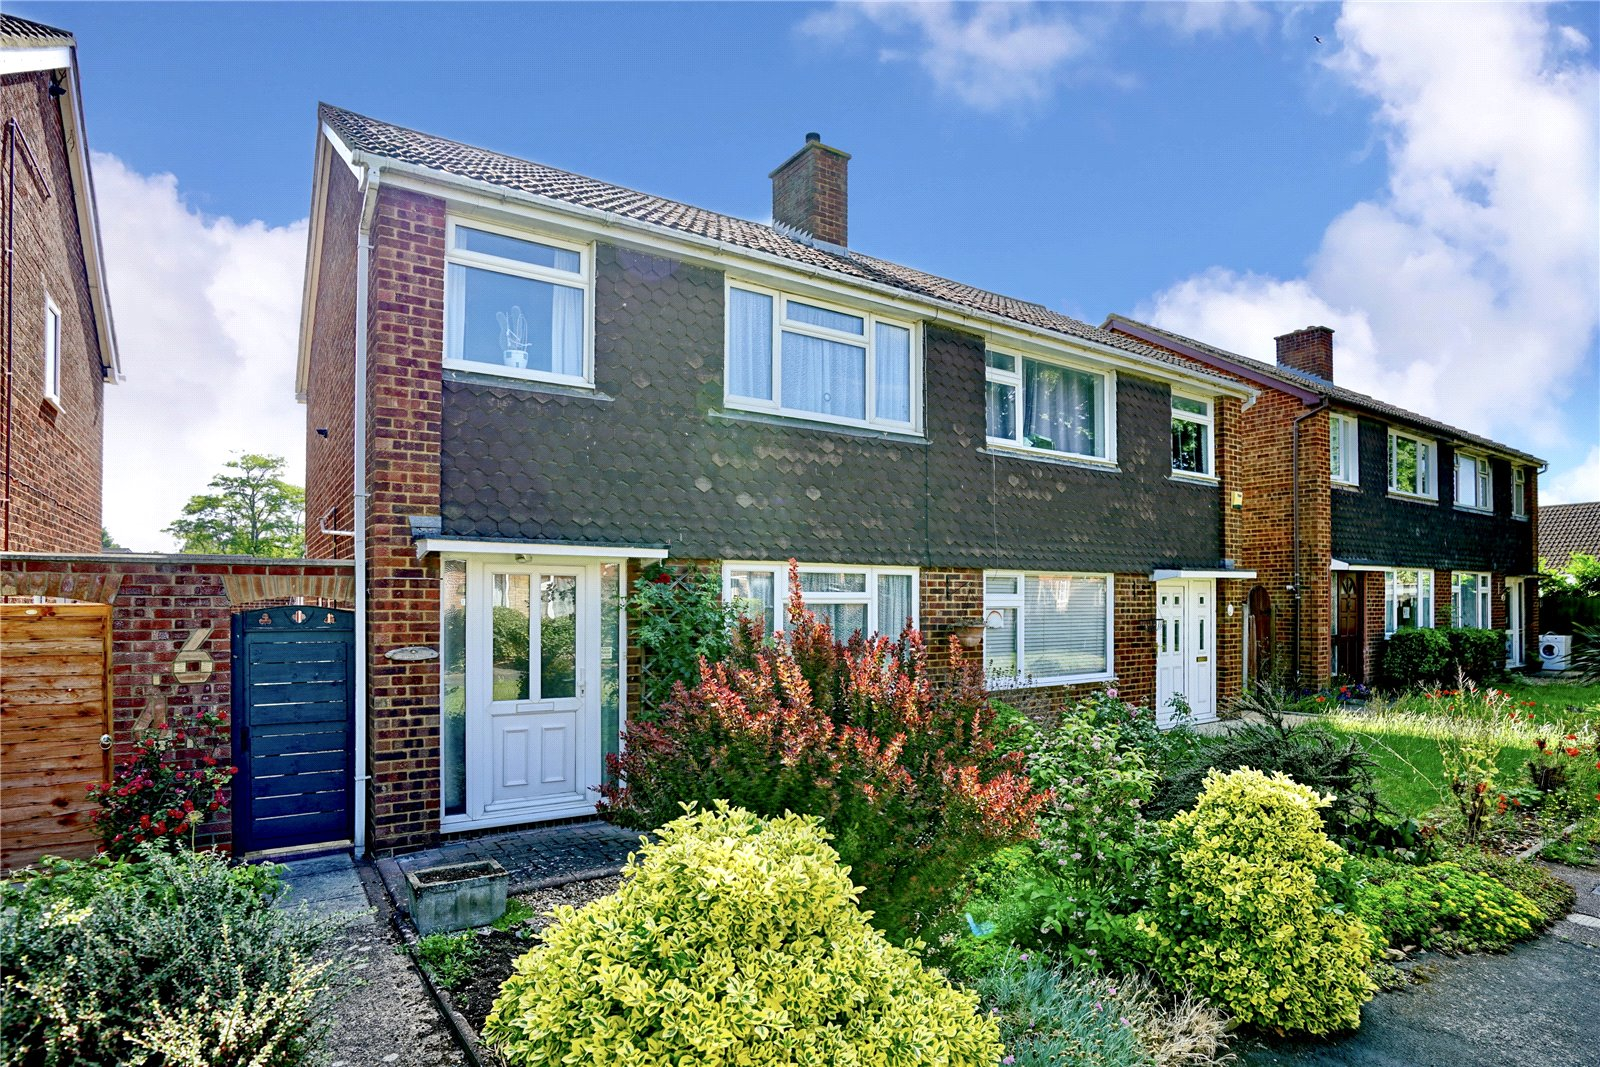 3 bed house for sale in Little Paxton, Reynolds Drive, PE19 6QB  - Property Image 1